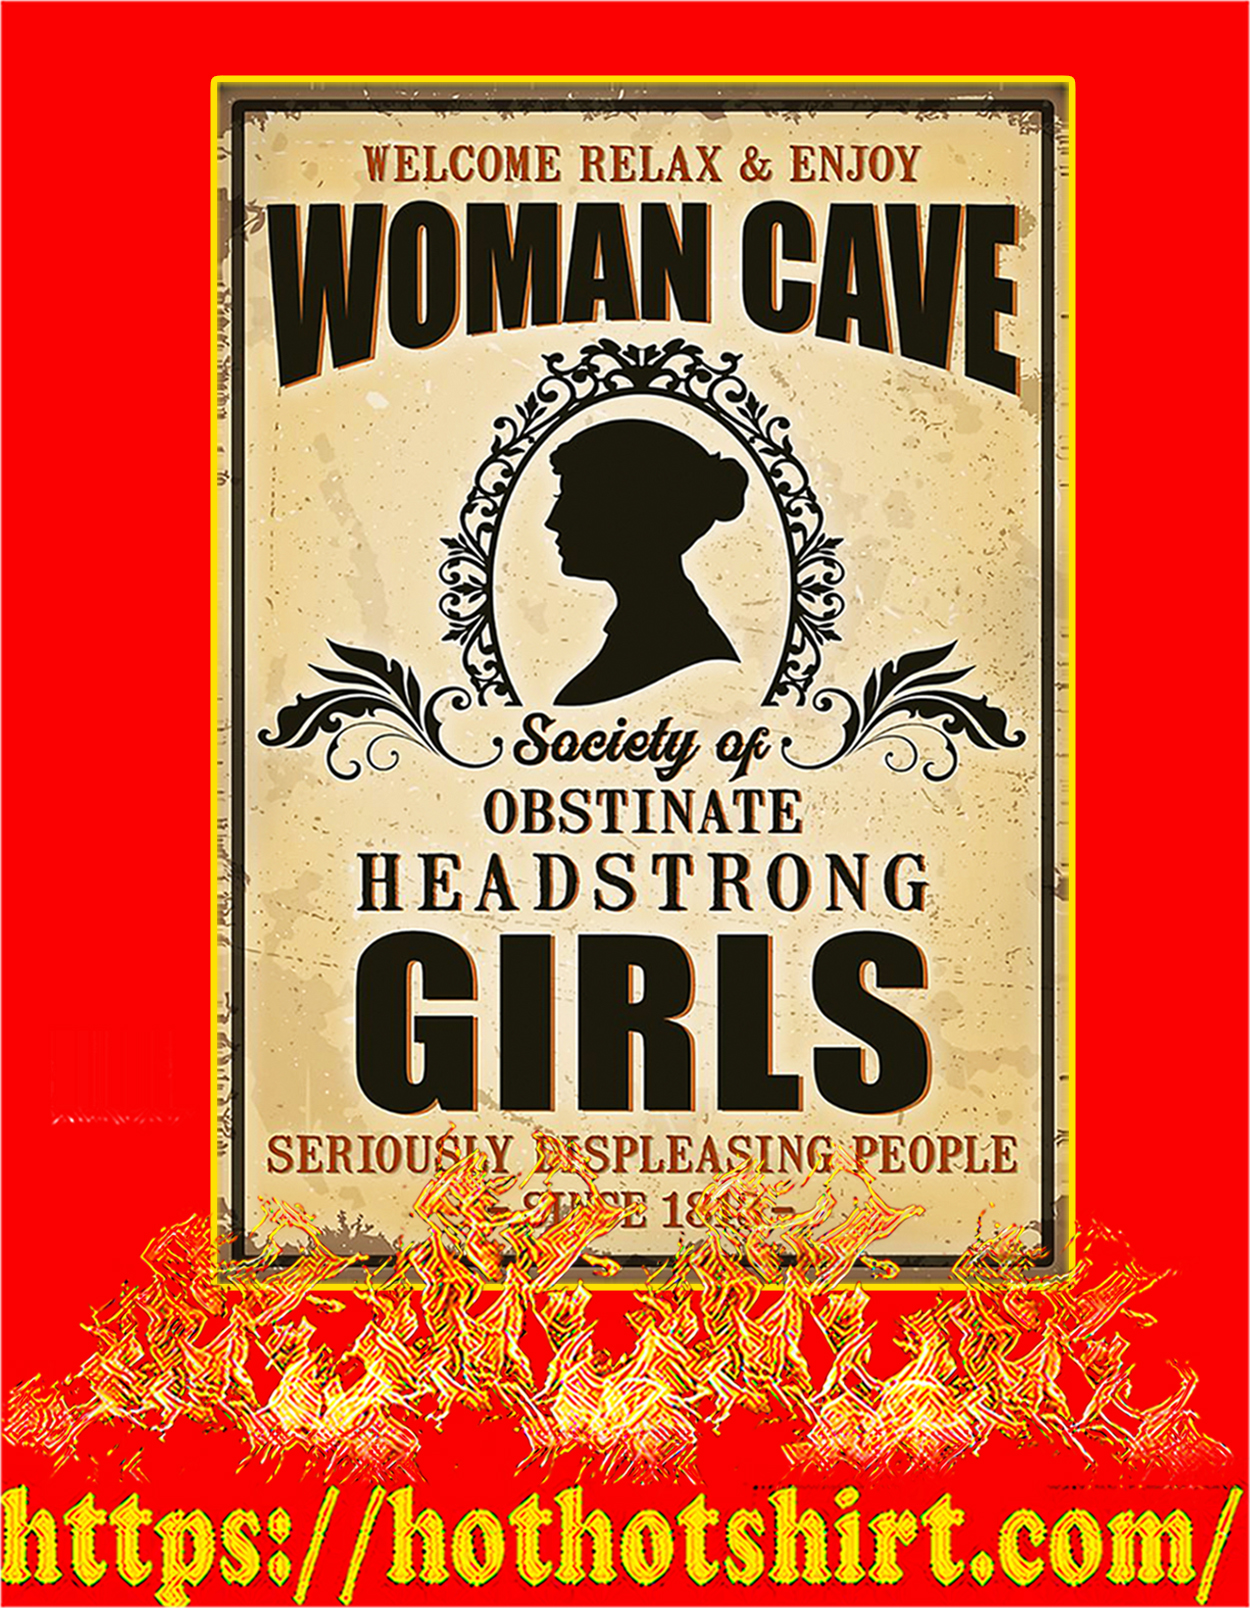 Woman cave society of obstinate headstrong girls poster - A3